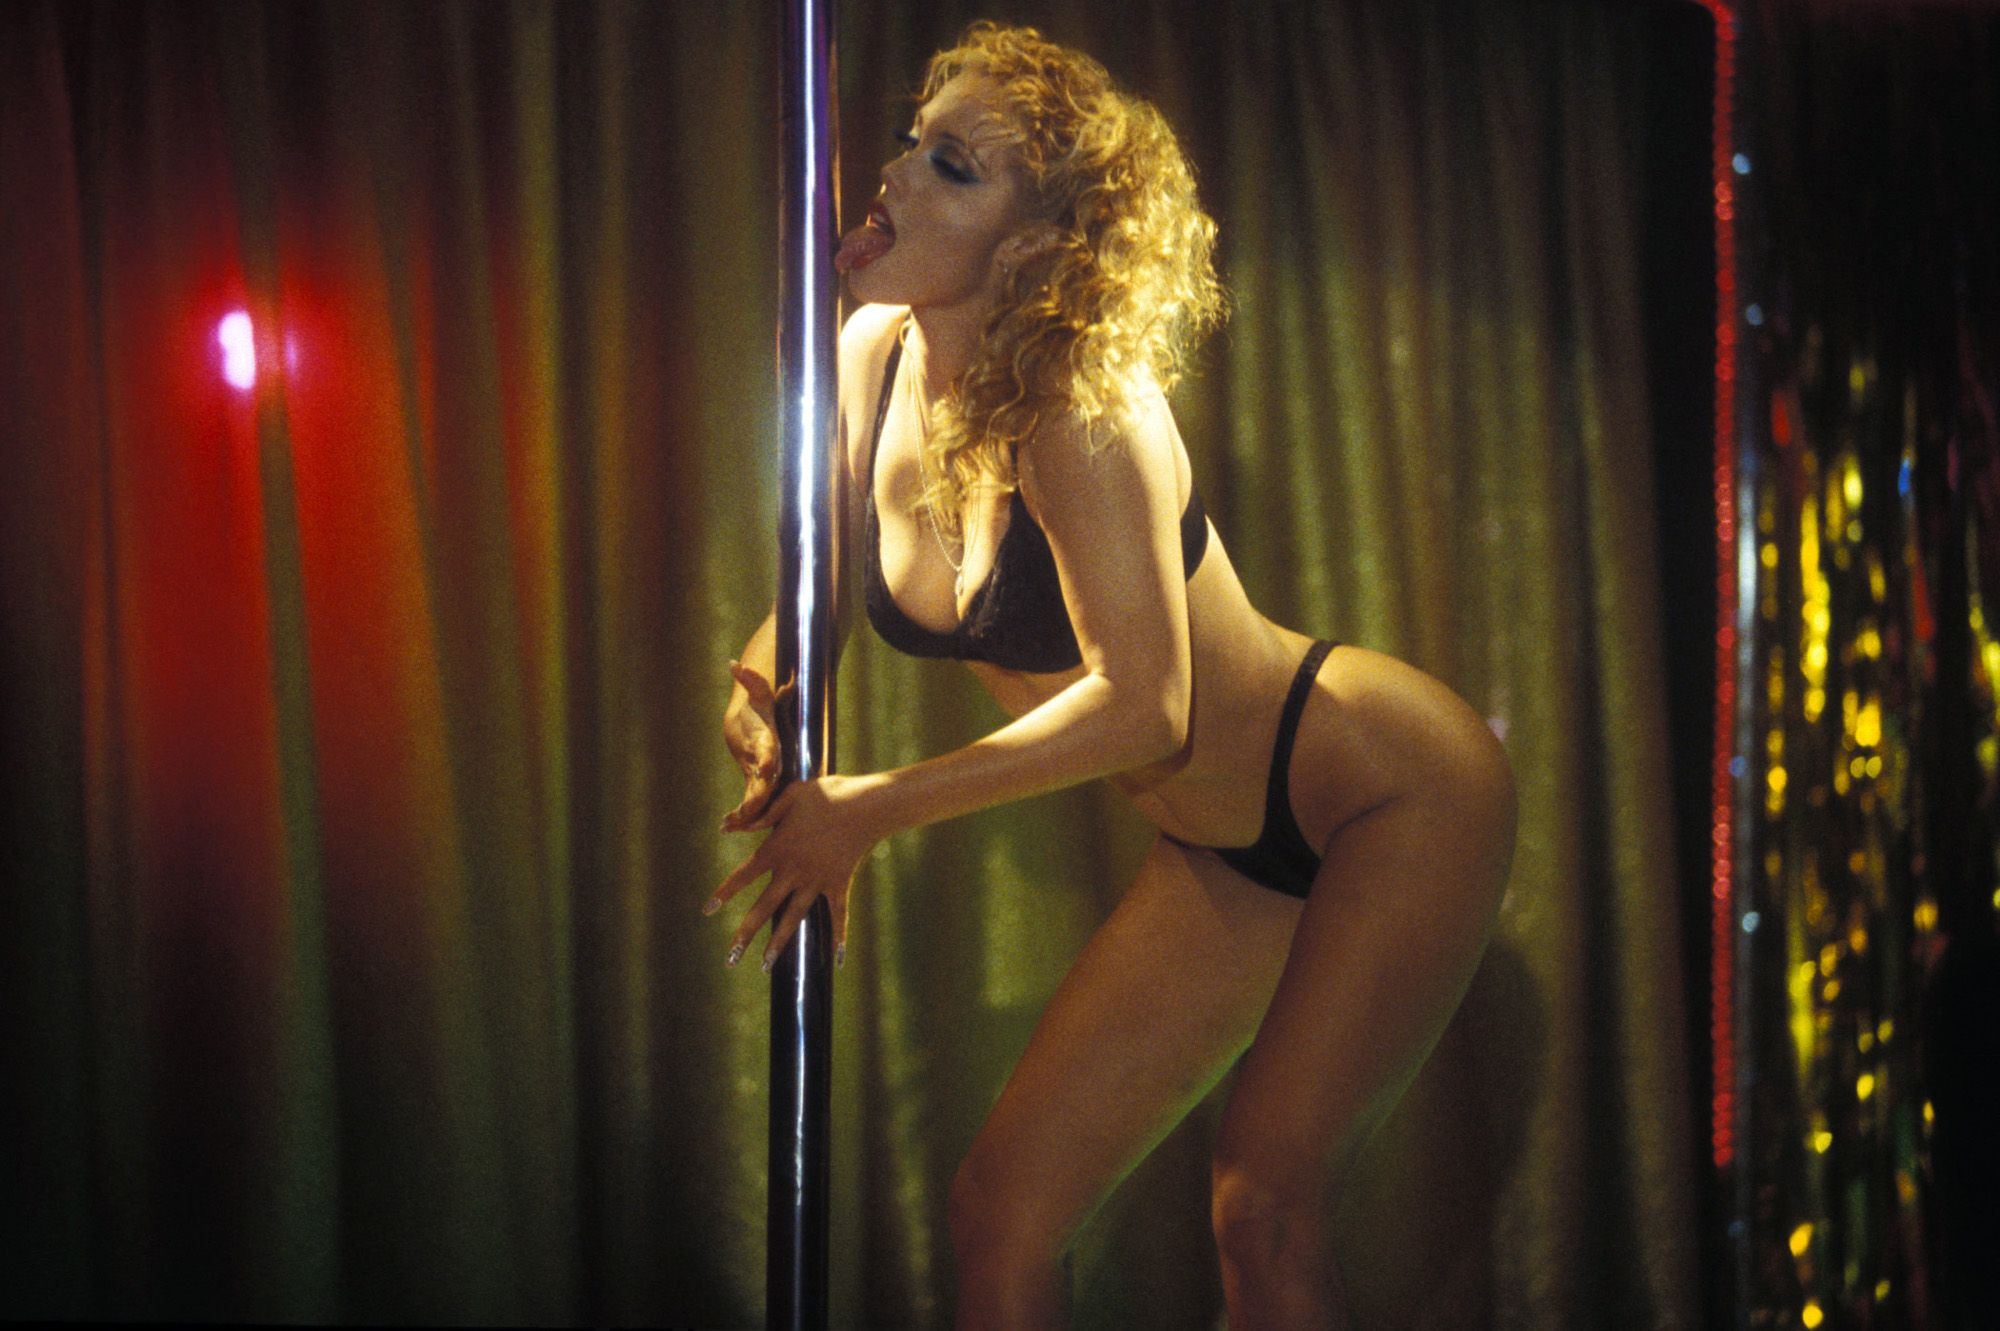 0802180140665_3_Elizabeth Berkley in Showgirls (1995).jpg